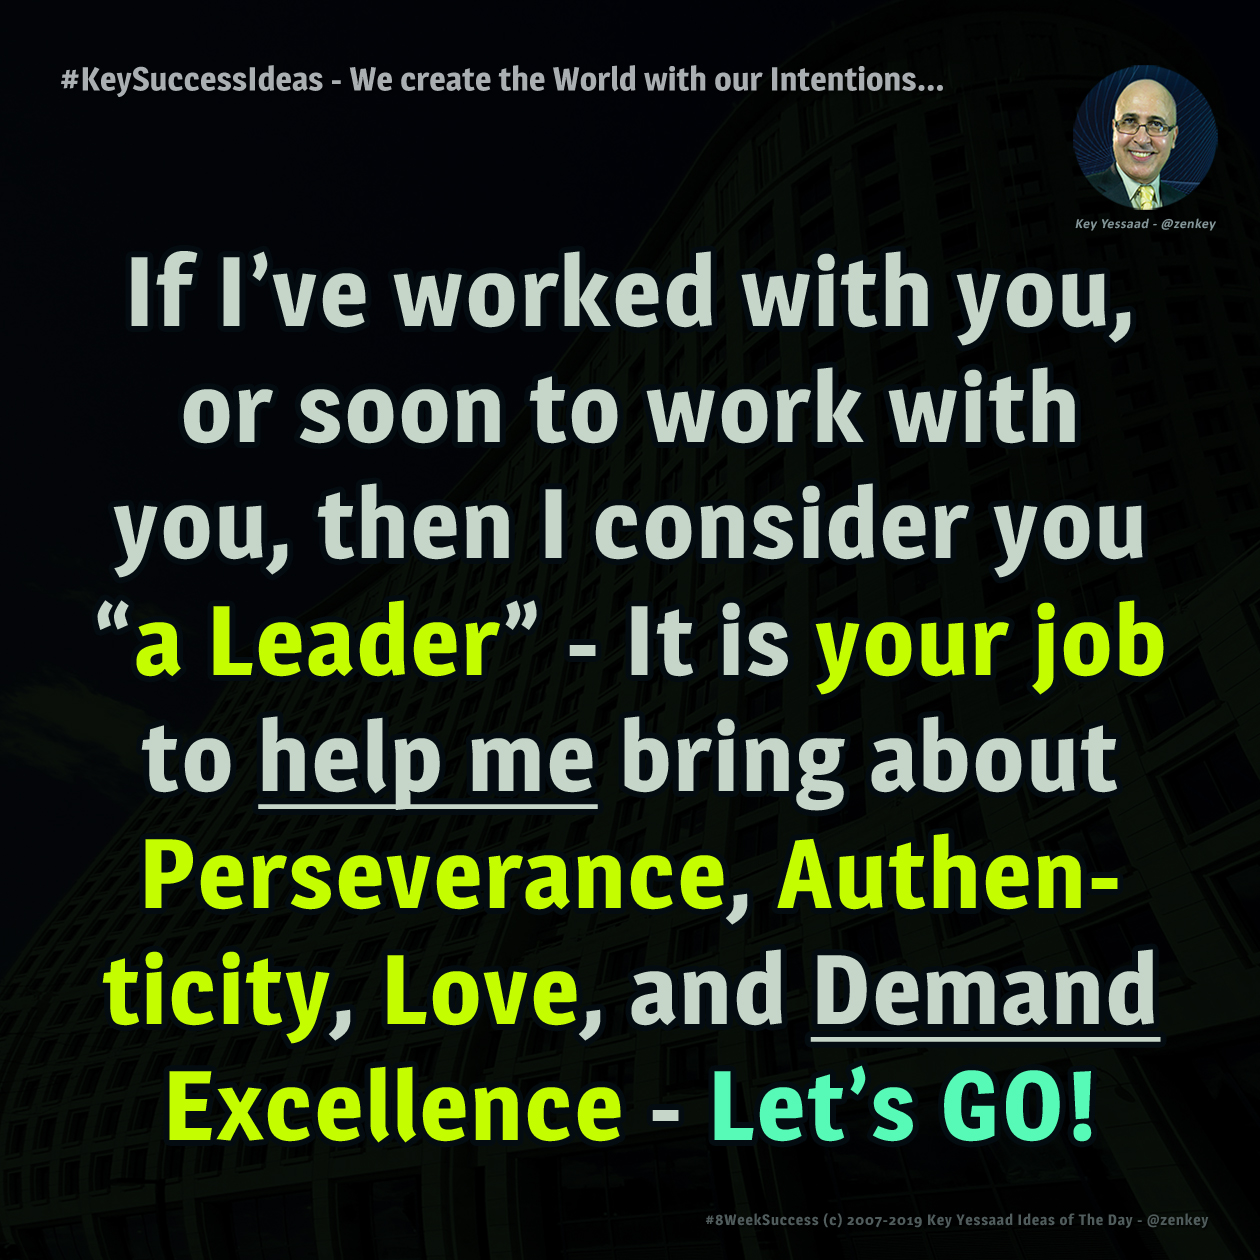 #KeySuccessIdeas - We create the World with our Intentions...